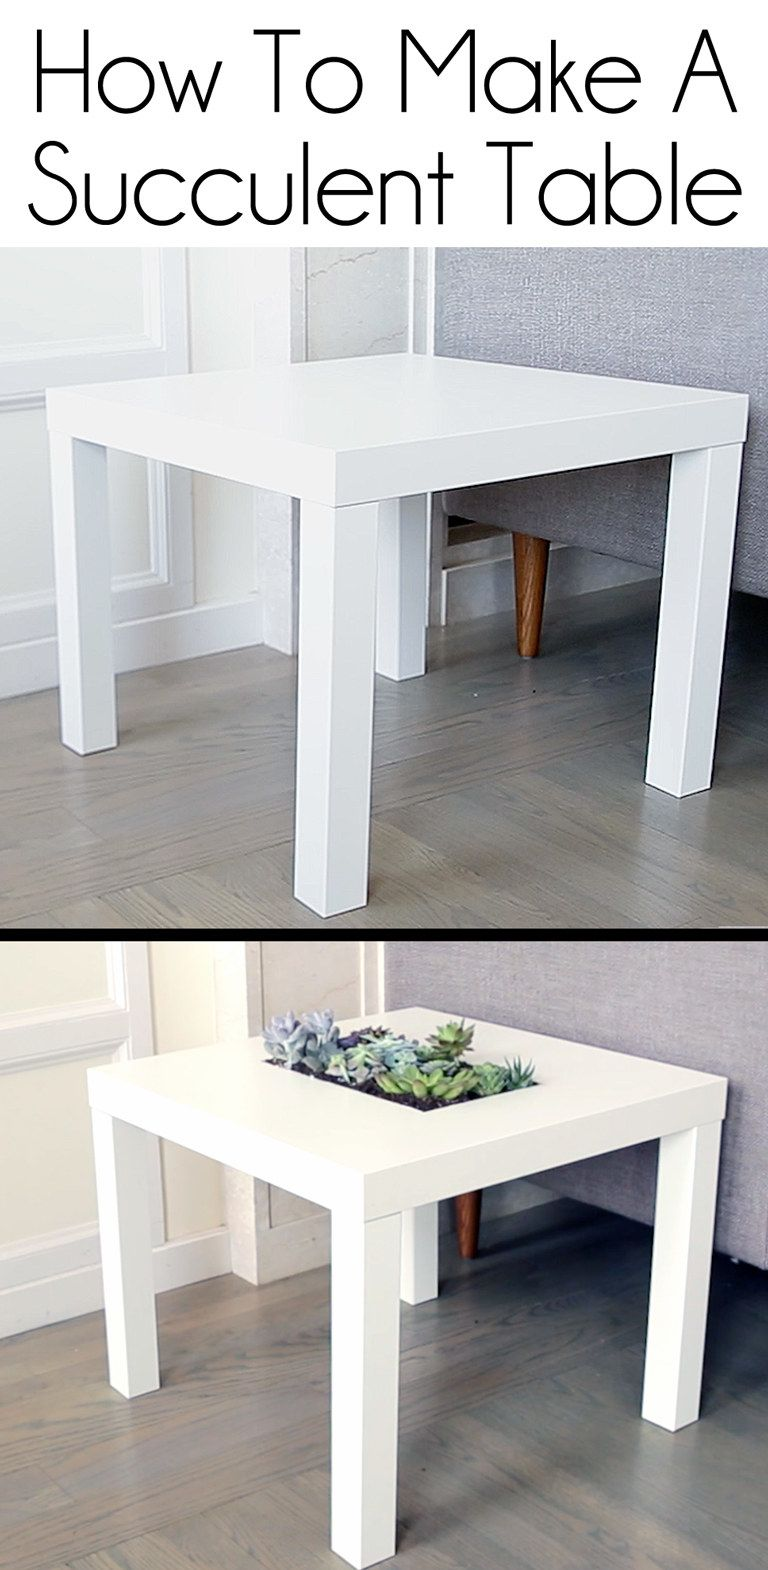 Phenomenal Get Fancy Af And Turn A Table Into A Succulent Garden Ikea Gamerscity Chair Design For Home Gamerscityorg